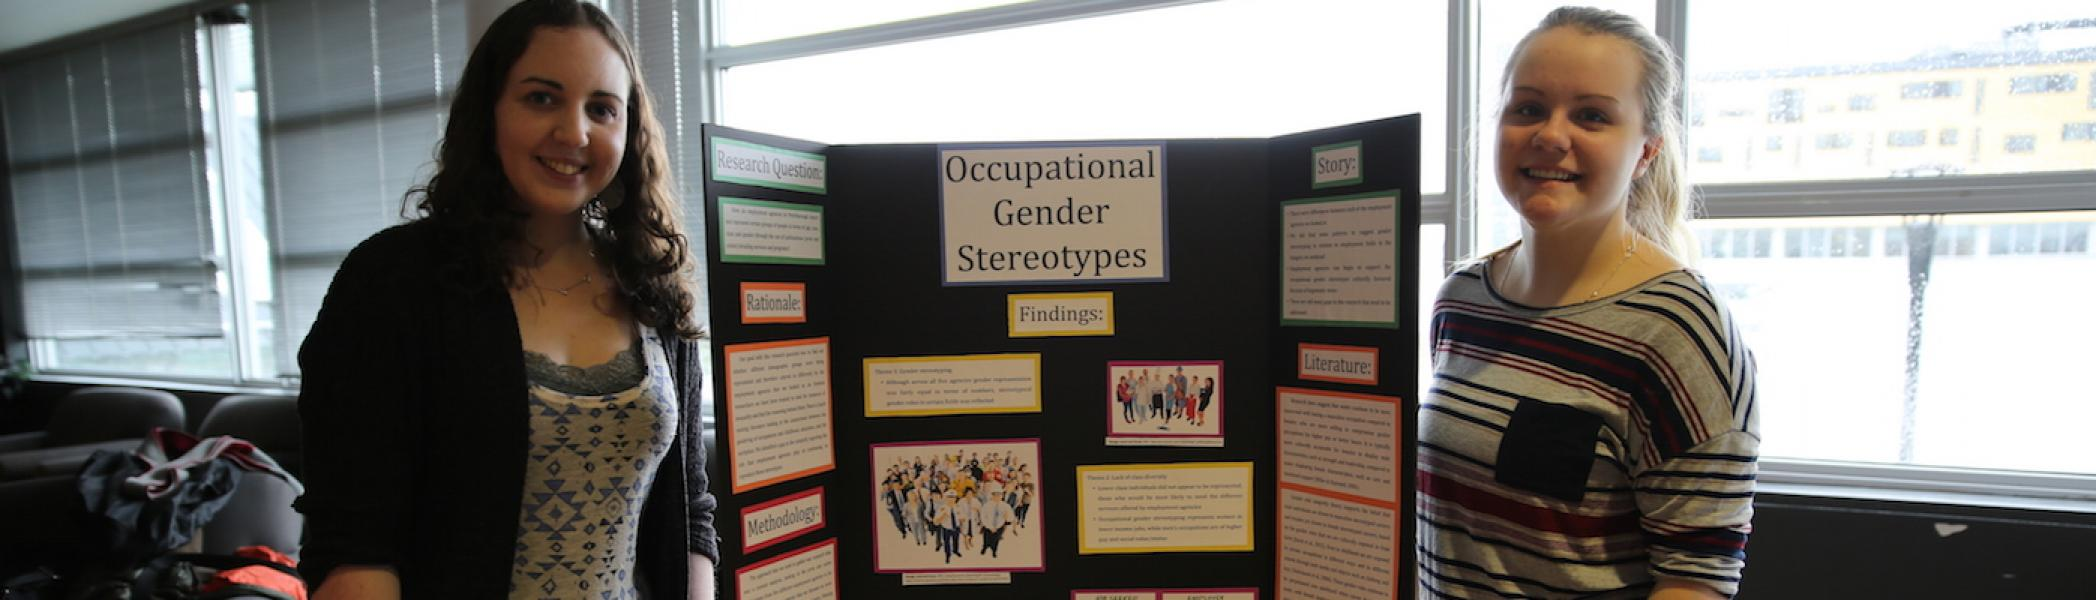 """Two girls standing in front of a poster with the title """"Occupational Gender Stereotypes"""""""